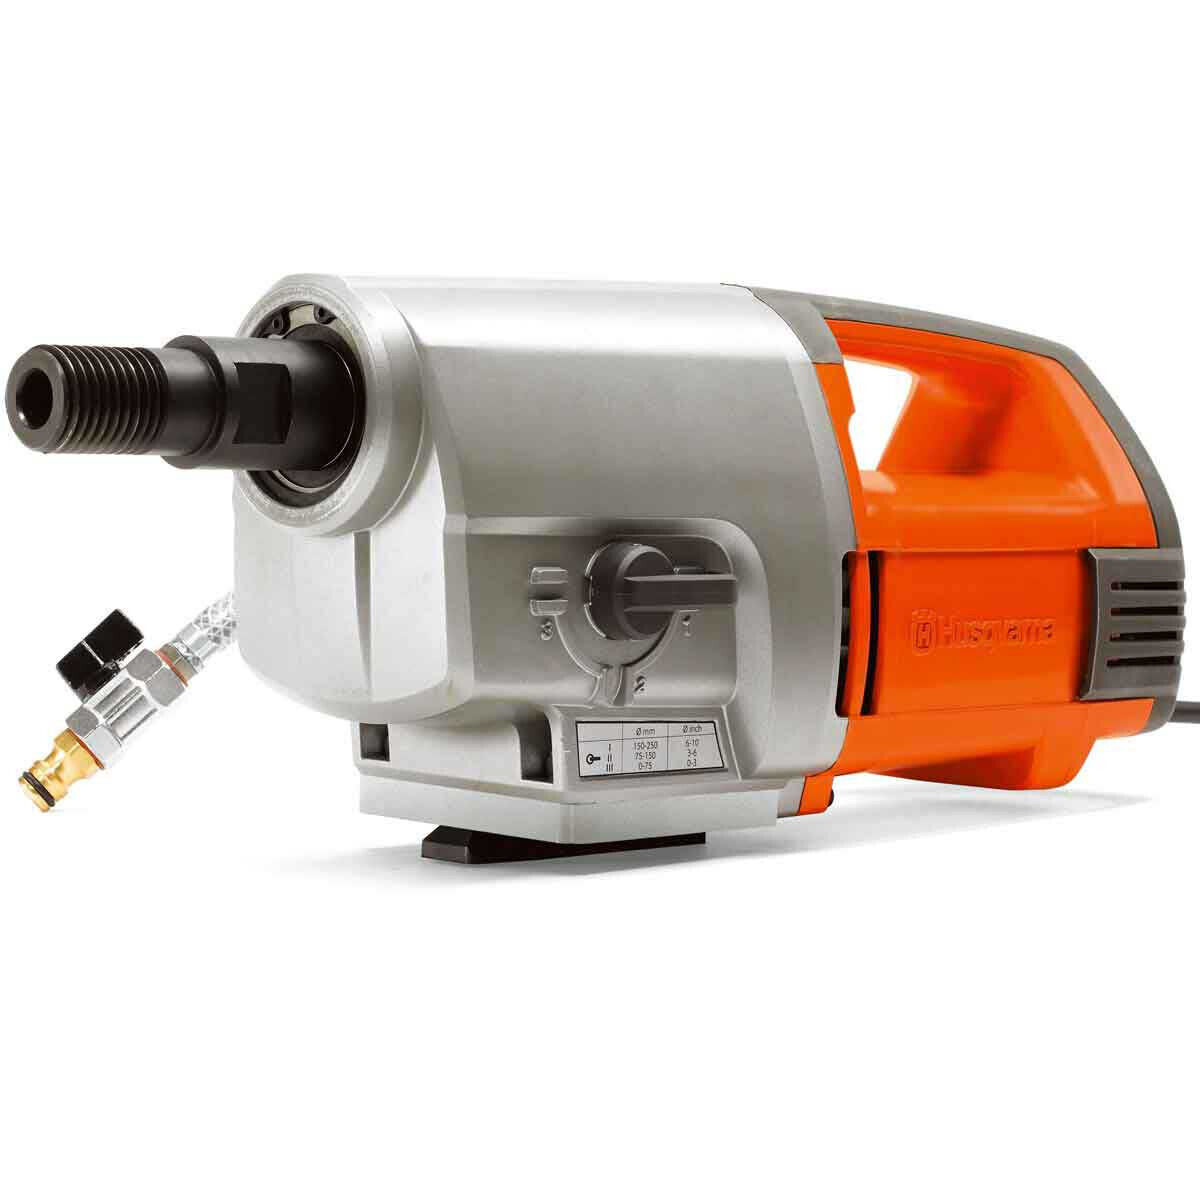 Husqvarna DMS 280 water swivel